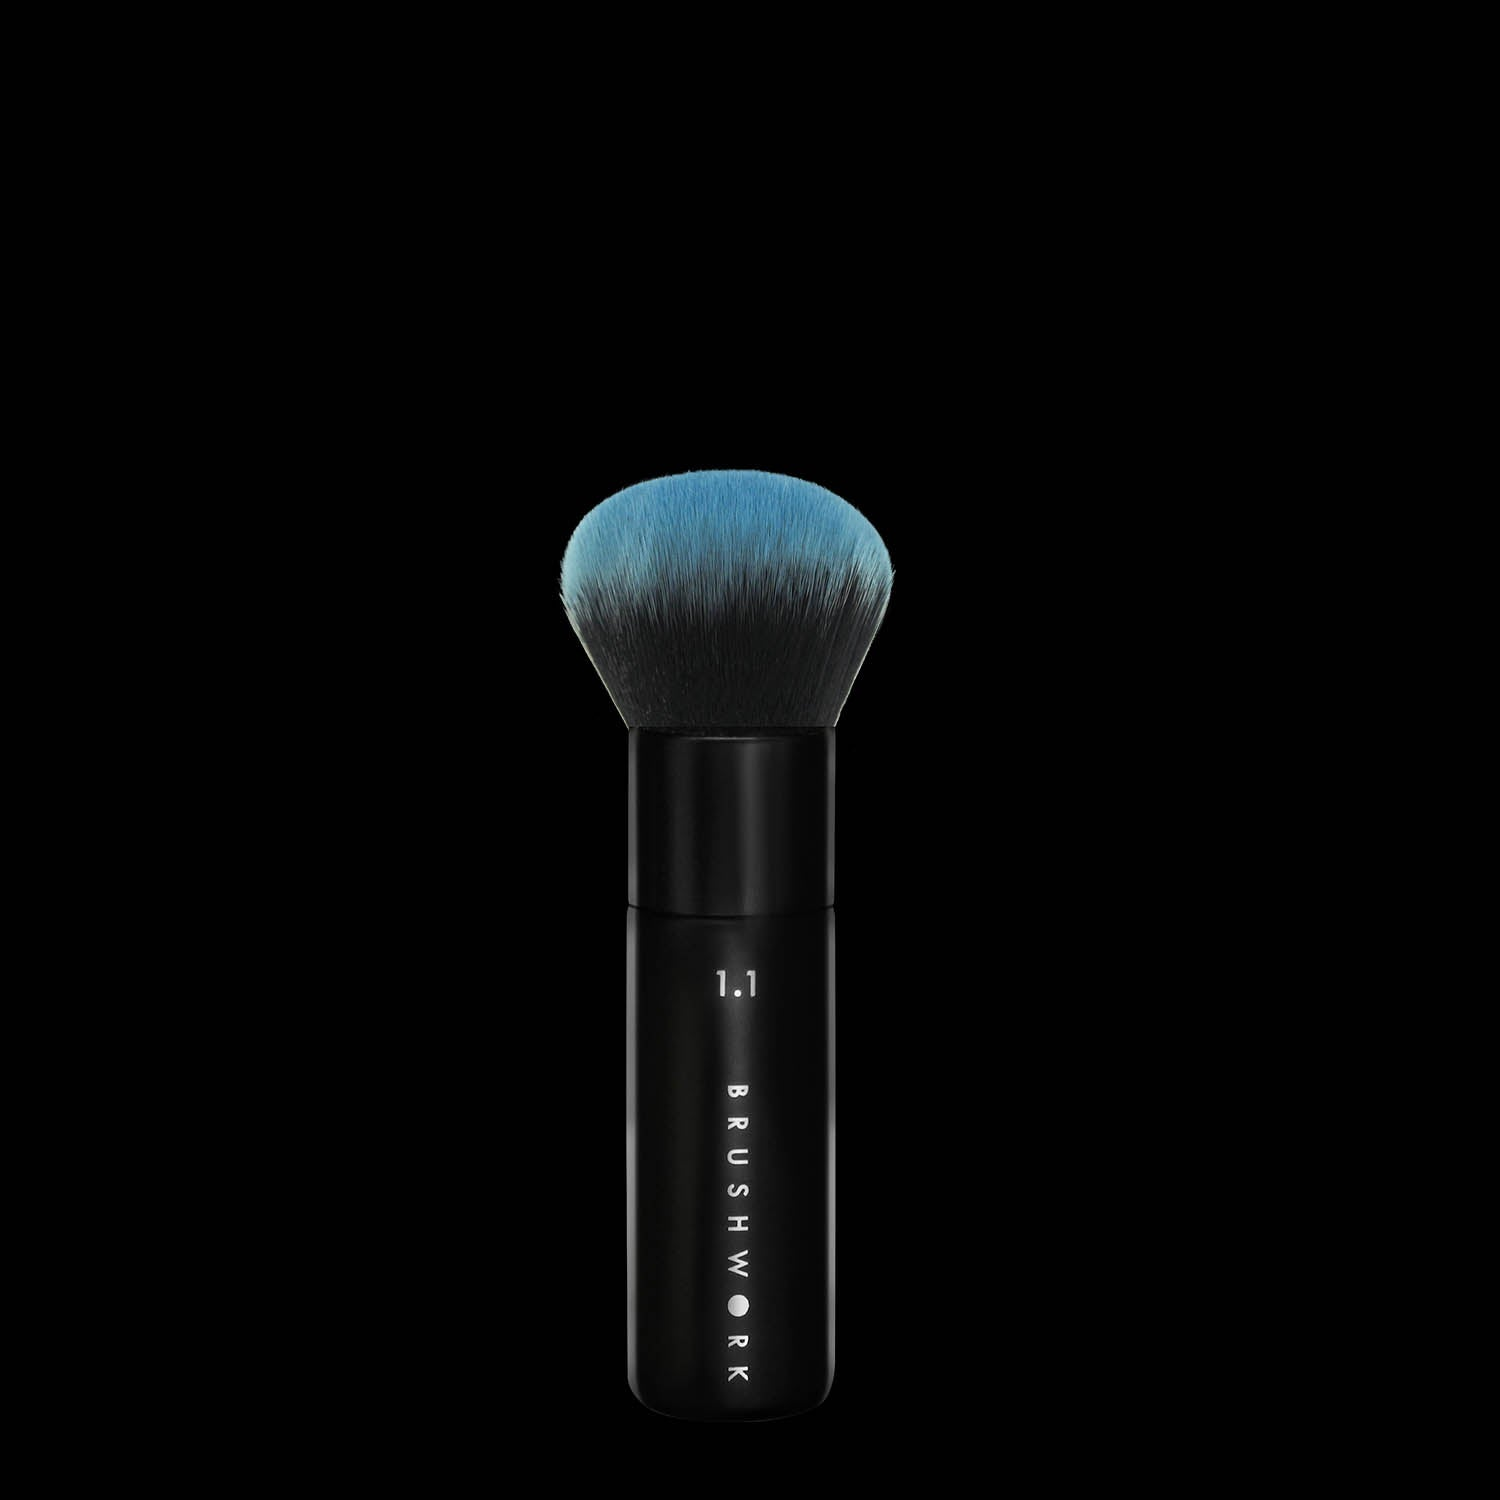 Brushwork Combo 1.1 The Ultimate Liquid Foundation Brush 2.5 Dome Powder Brush 2.2 Blush Brush